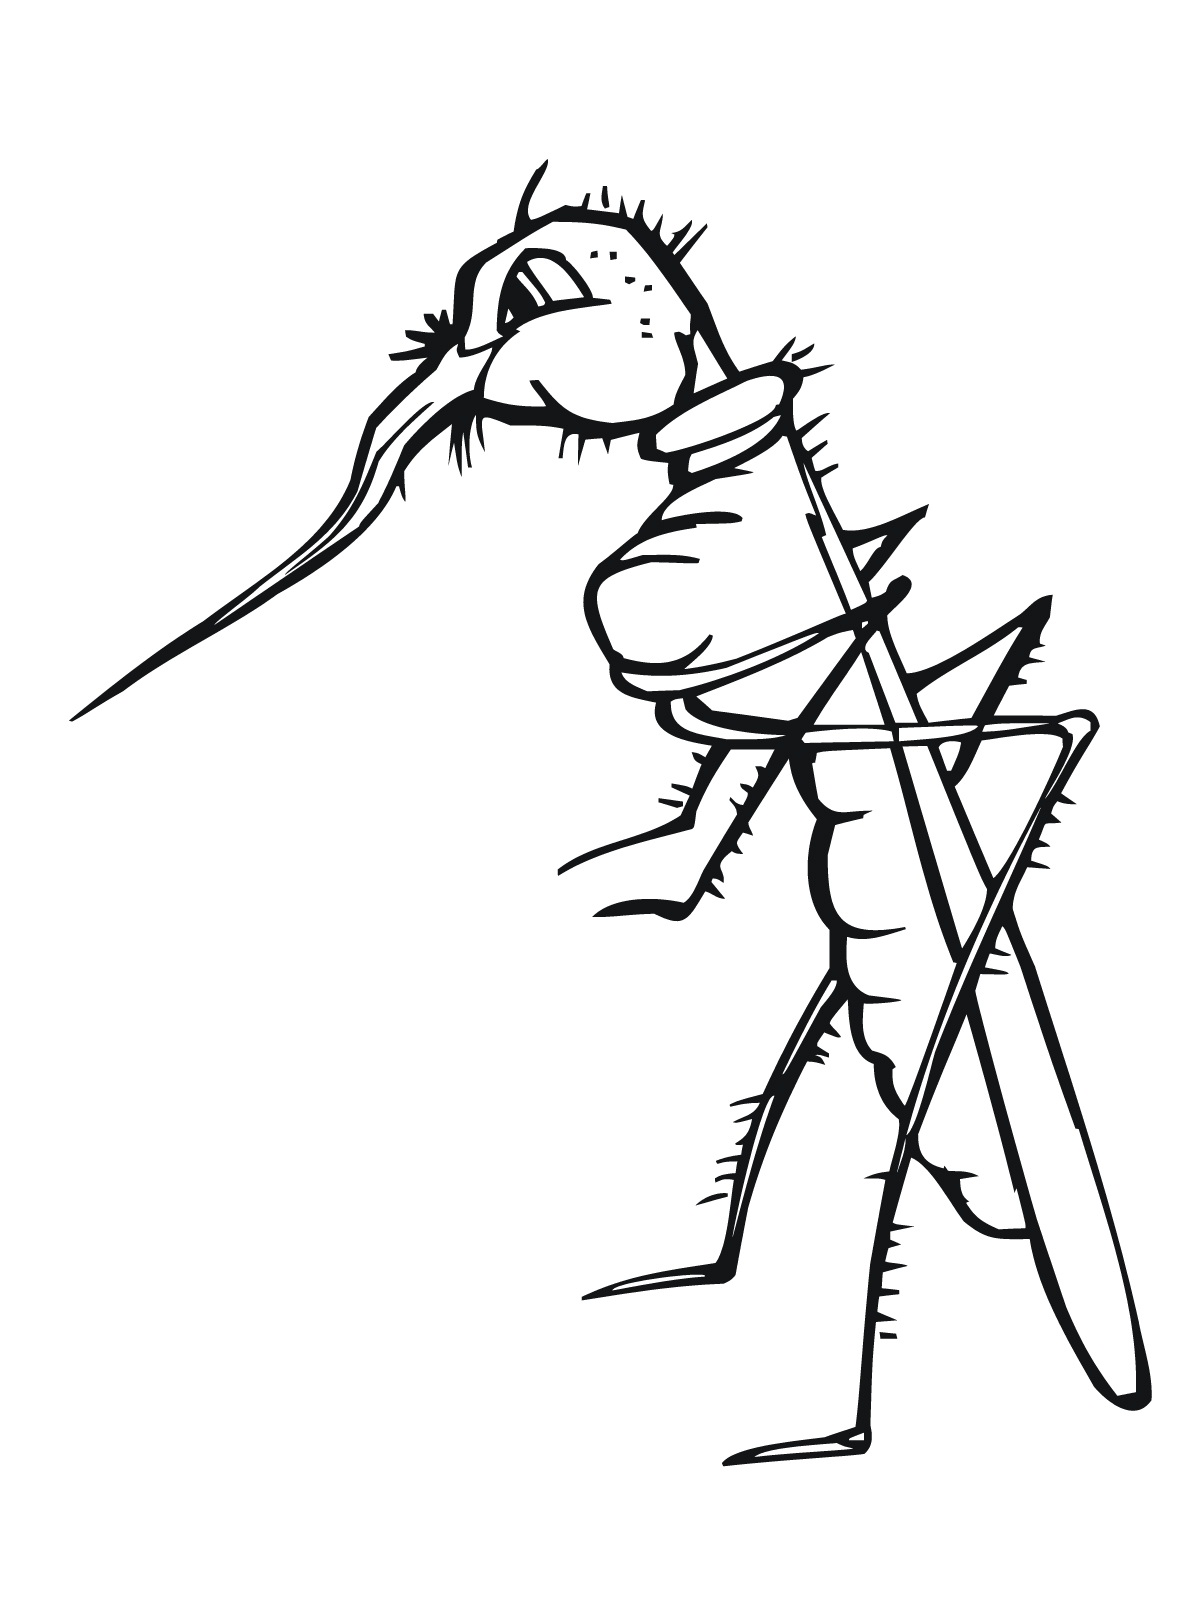 Free Printable Mosquito Coloring Pages For Kids | 1600x1200